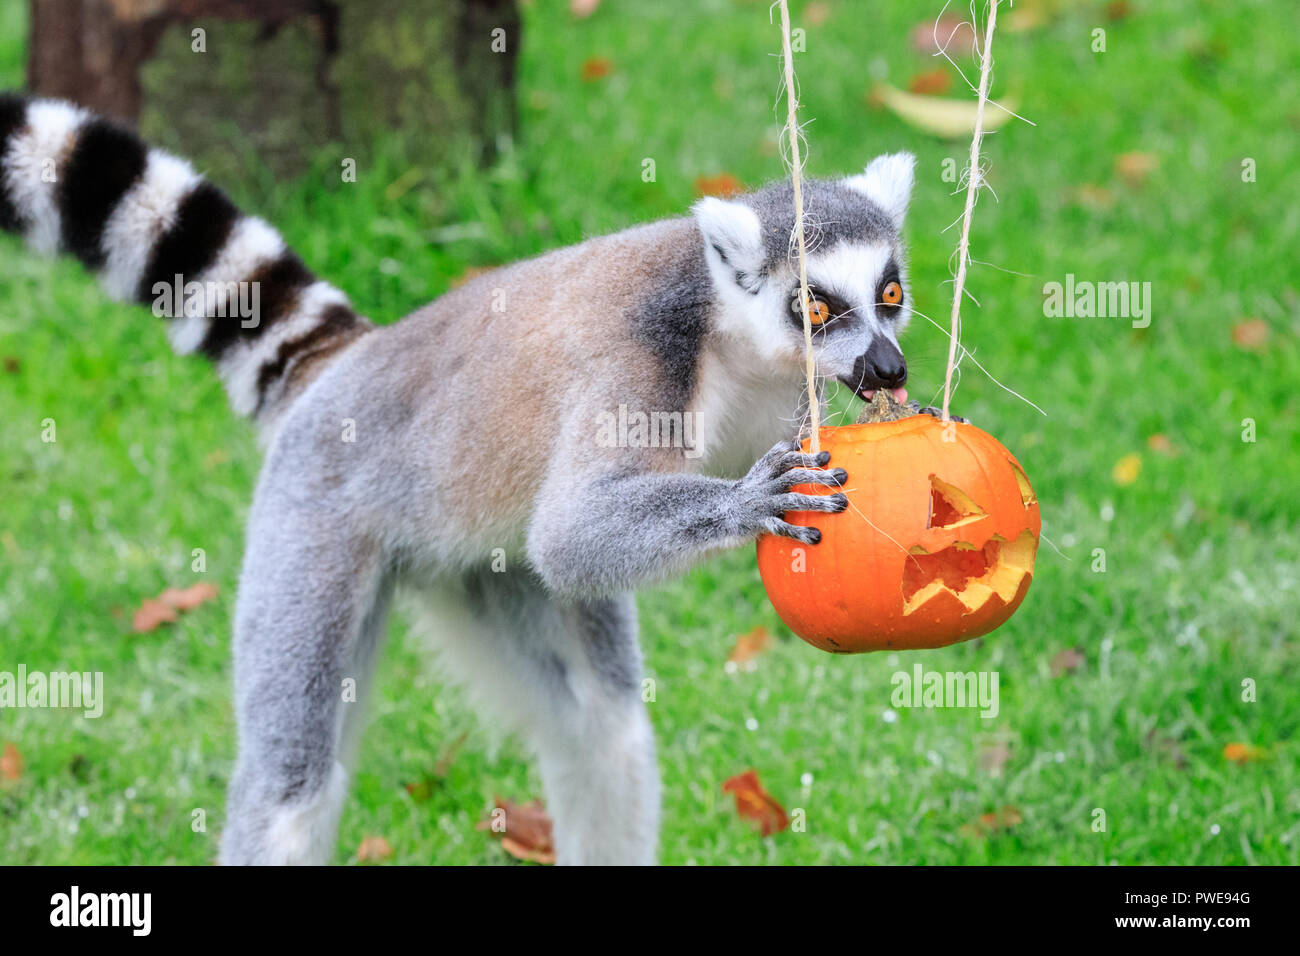 ZSL Whipsnade, UK, 16th Oct 2018. A group of playful ring-tailed lemurs are getting into the Halloween spirit and are excitedly investigating their pumpkins and treats. These are given out ahead of Boo at the Zoo, ZSL Whipsnade Zoo's annual celebration of hairy-scary family fun.  The surprises are given out ahead of Boo at the Zoo, ZSL Whipsnade Zoo's annual celebration of hairy-scary Halloween family fun which runs from Saturday 20 October to Wednesday 31 October 2018. Credit: Imageplotter News and Sports/Alamy Live News - Stock Image